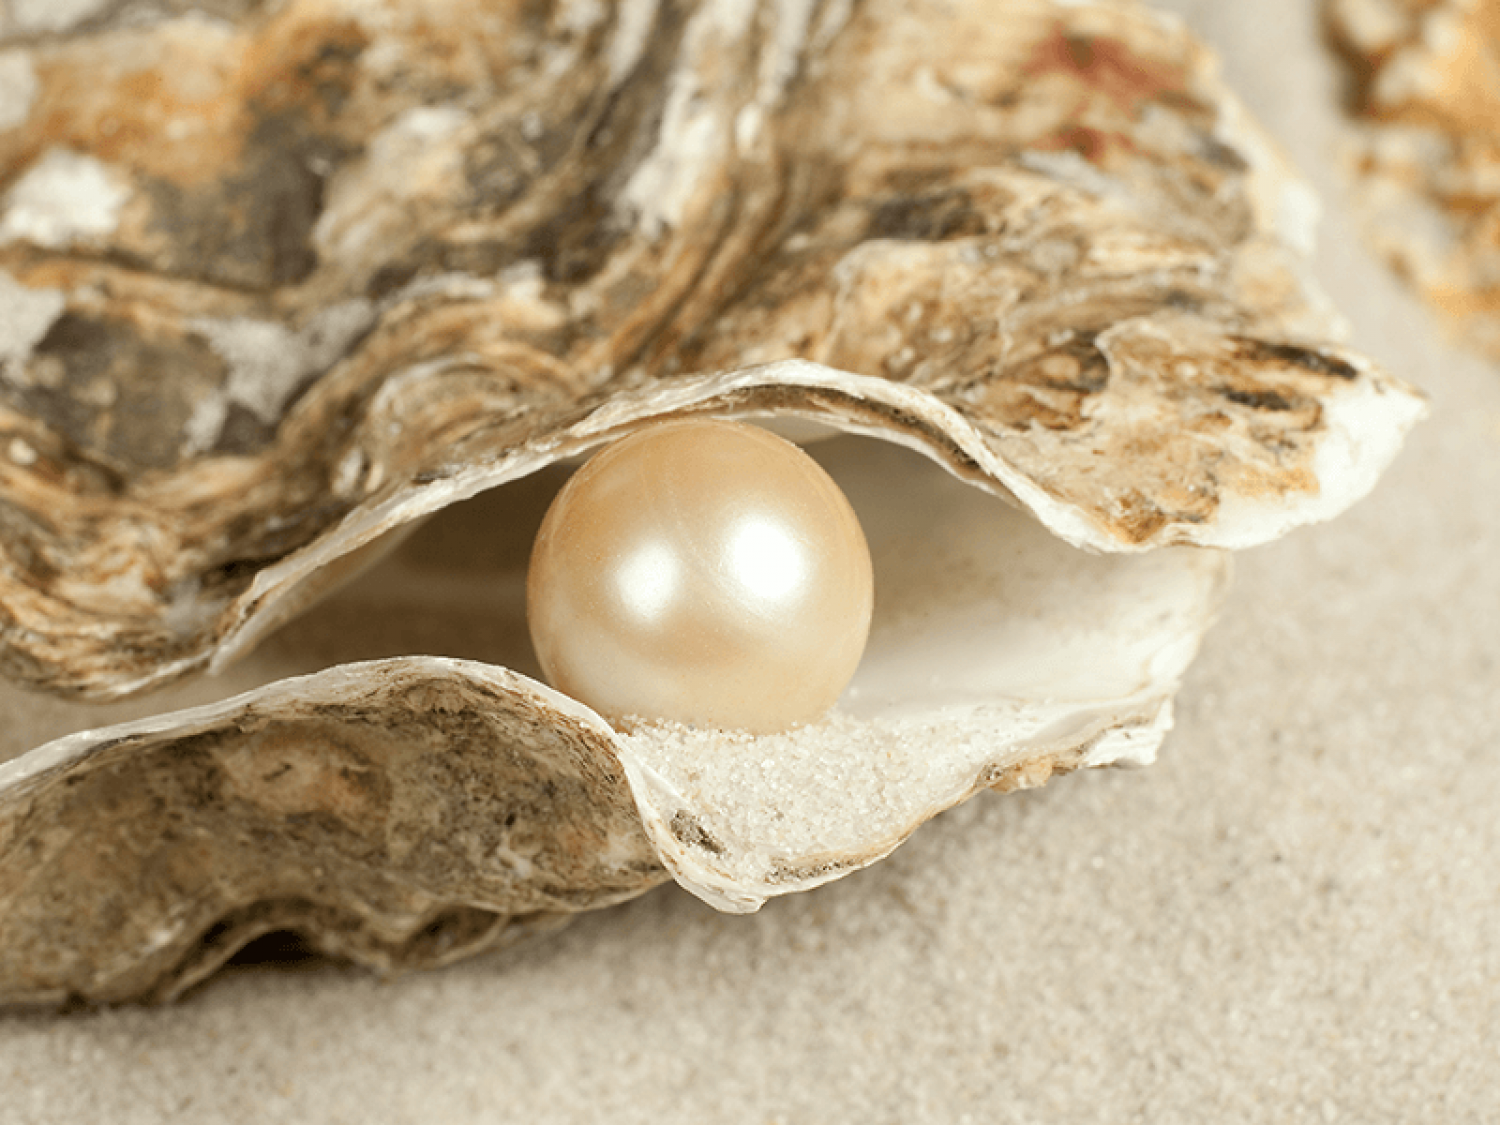 What is a Pearl Gemstone?